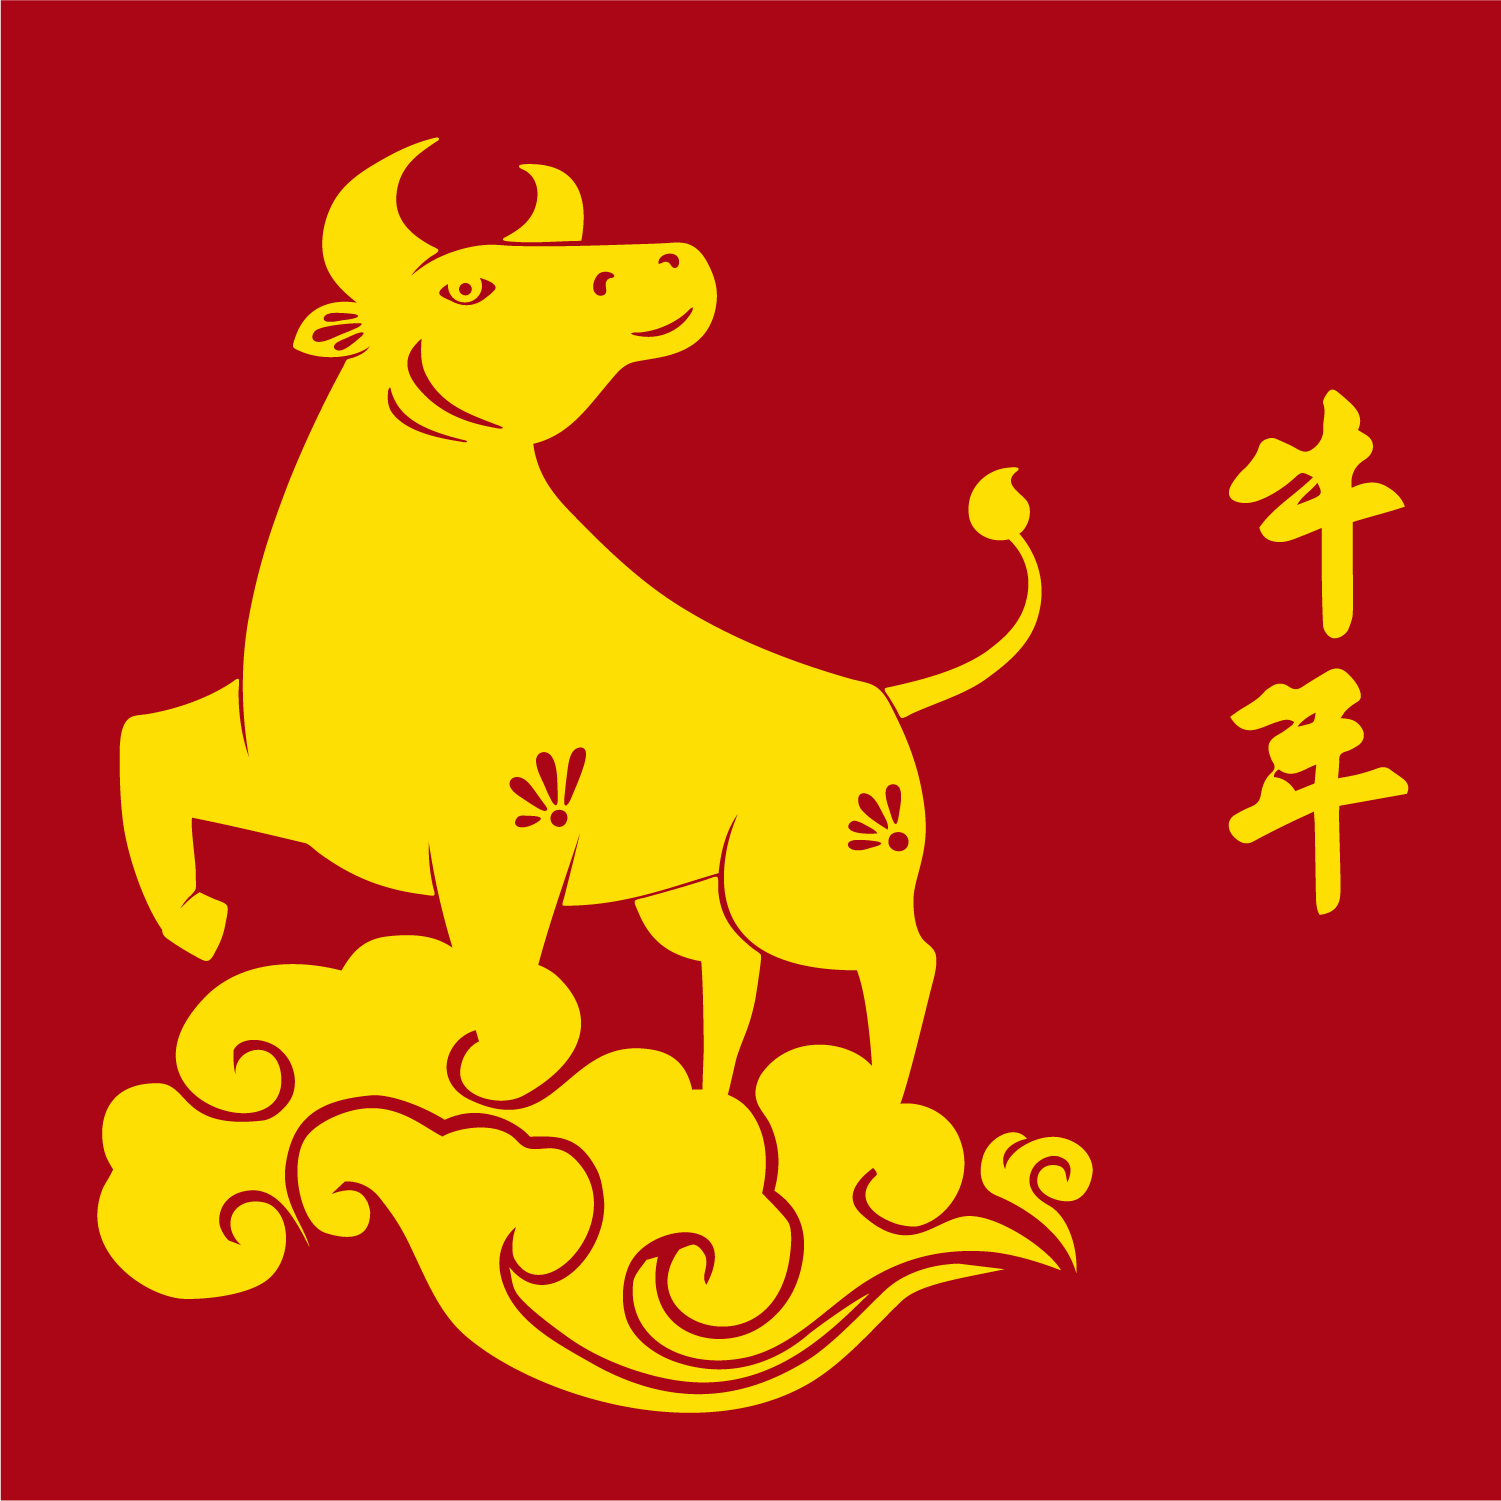 Simple Ox logo 2021 png